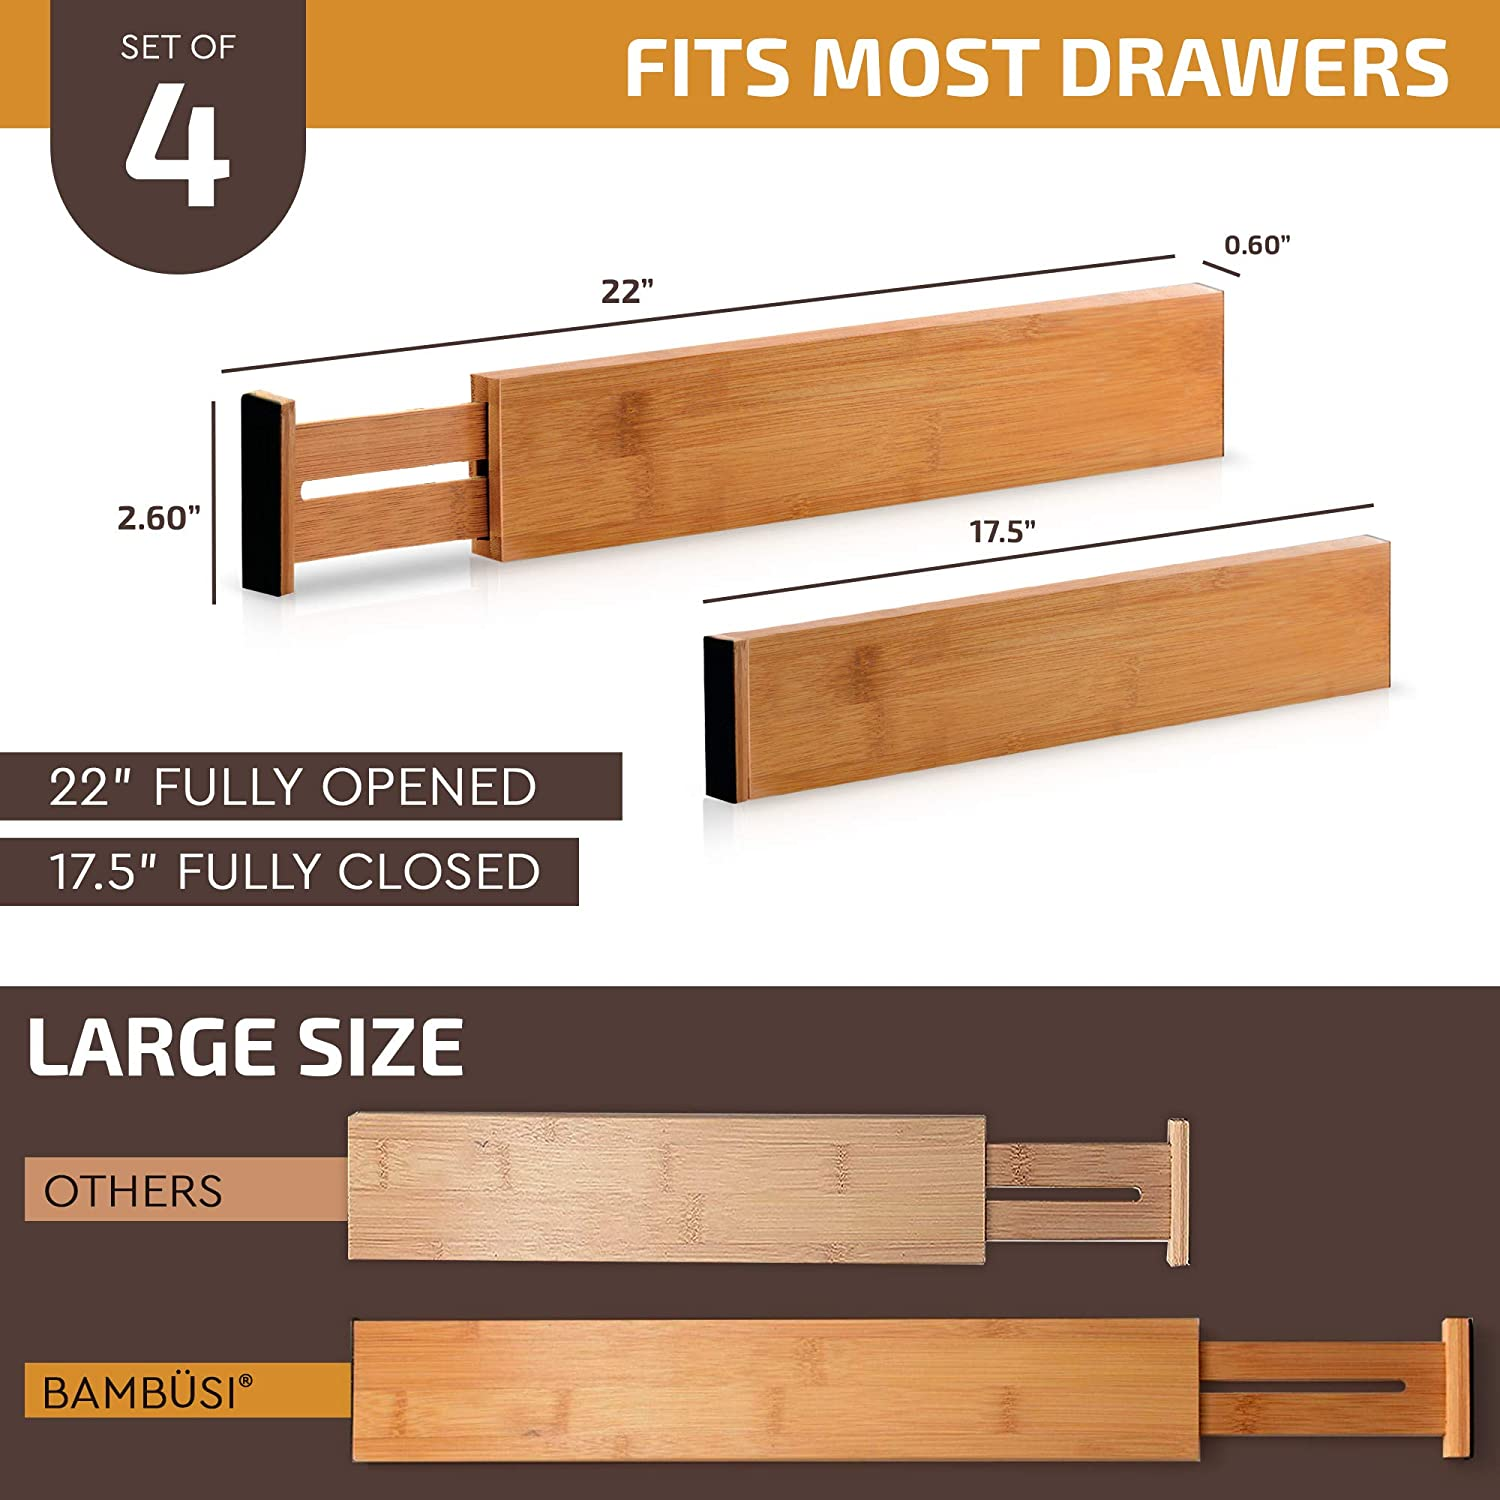 Bamboo Adjustable Drawer Dividers Organizers - Large Expandable Utensil Organizer Separators for Kitchen, Dresser, Bedroom, Baby Drawer, Bathroom & Office, Set of 4 (2.6 Tall, 17.5-22 Inch, Natural): Kitchen & Dining